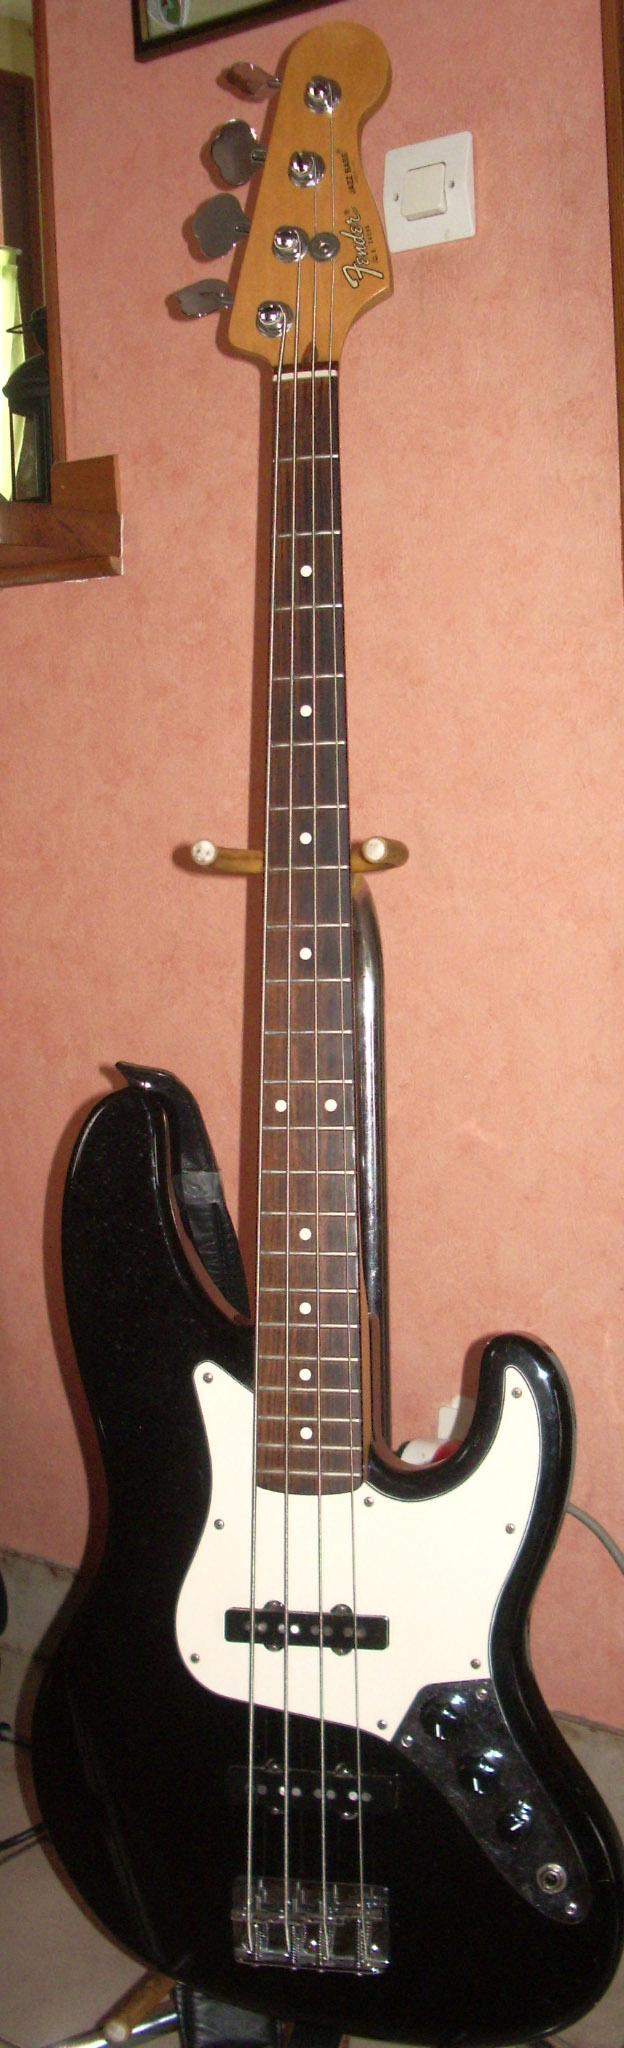 photo fender american standard jazz bass 1989 1994. Black Bedroom Furniture Sets. Home Design Ideas